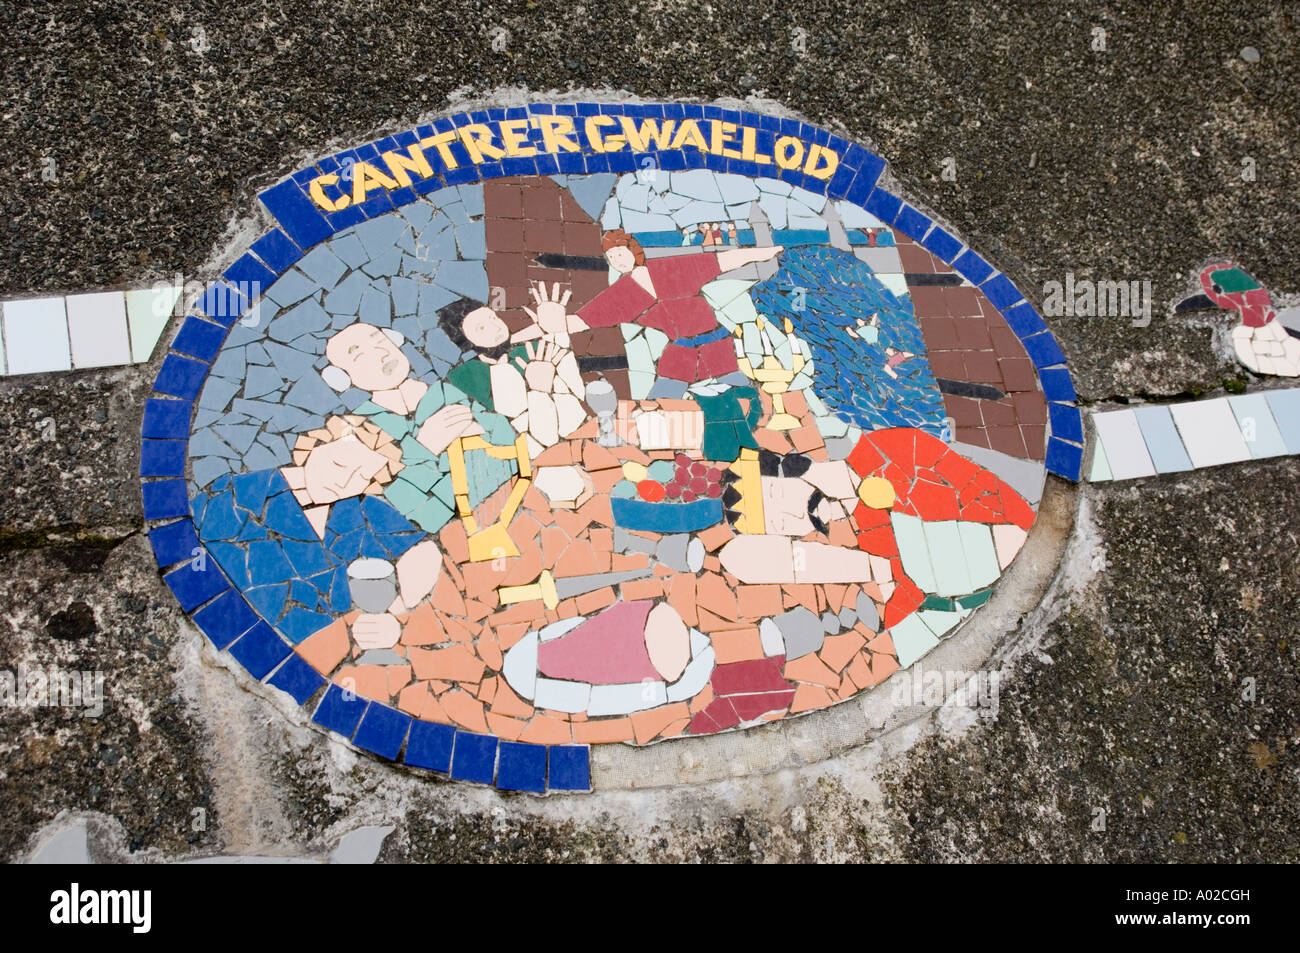 Murals at Borth Ceredigion west wales illustrating the legend of Cantre'r Gwaelod & history of this low lying coastal village - Stock Image